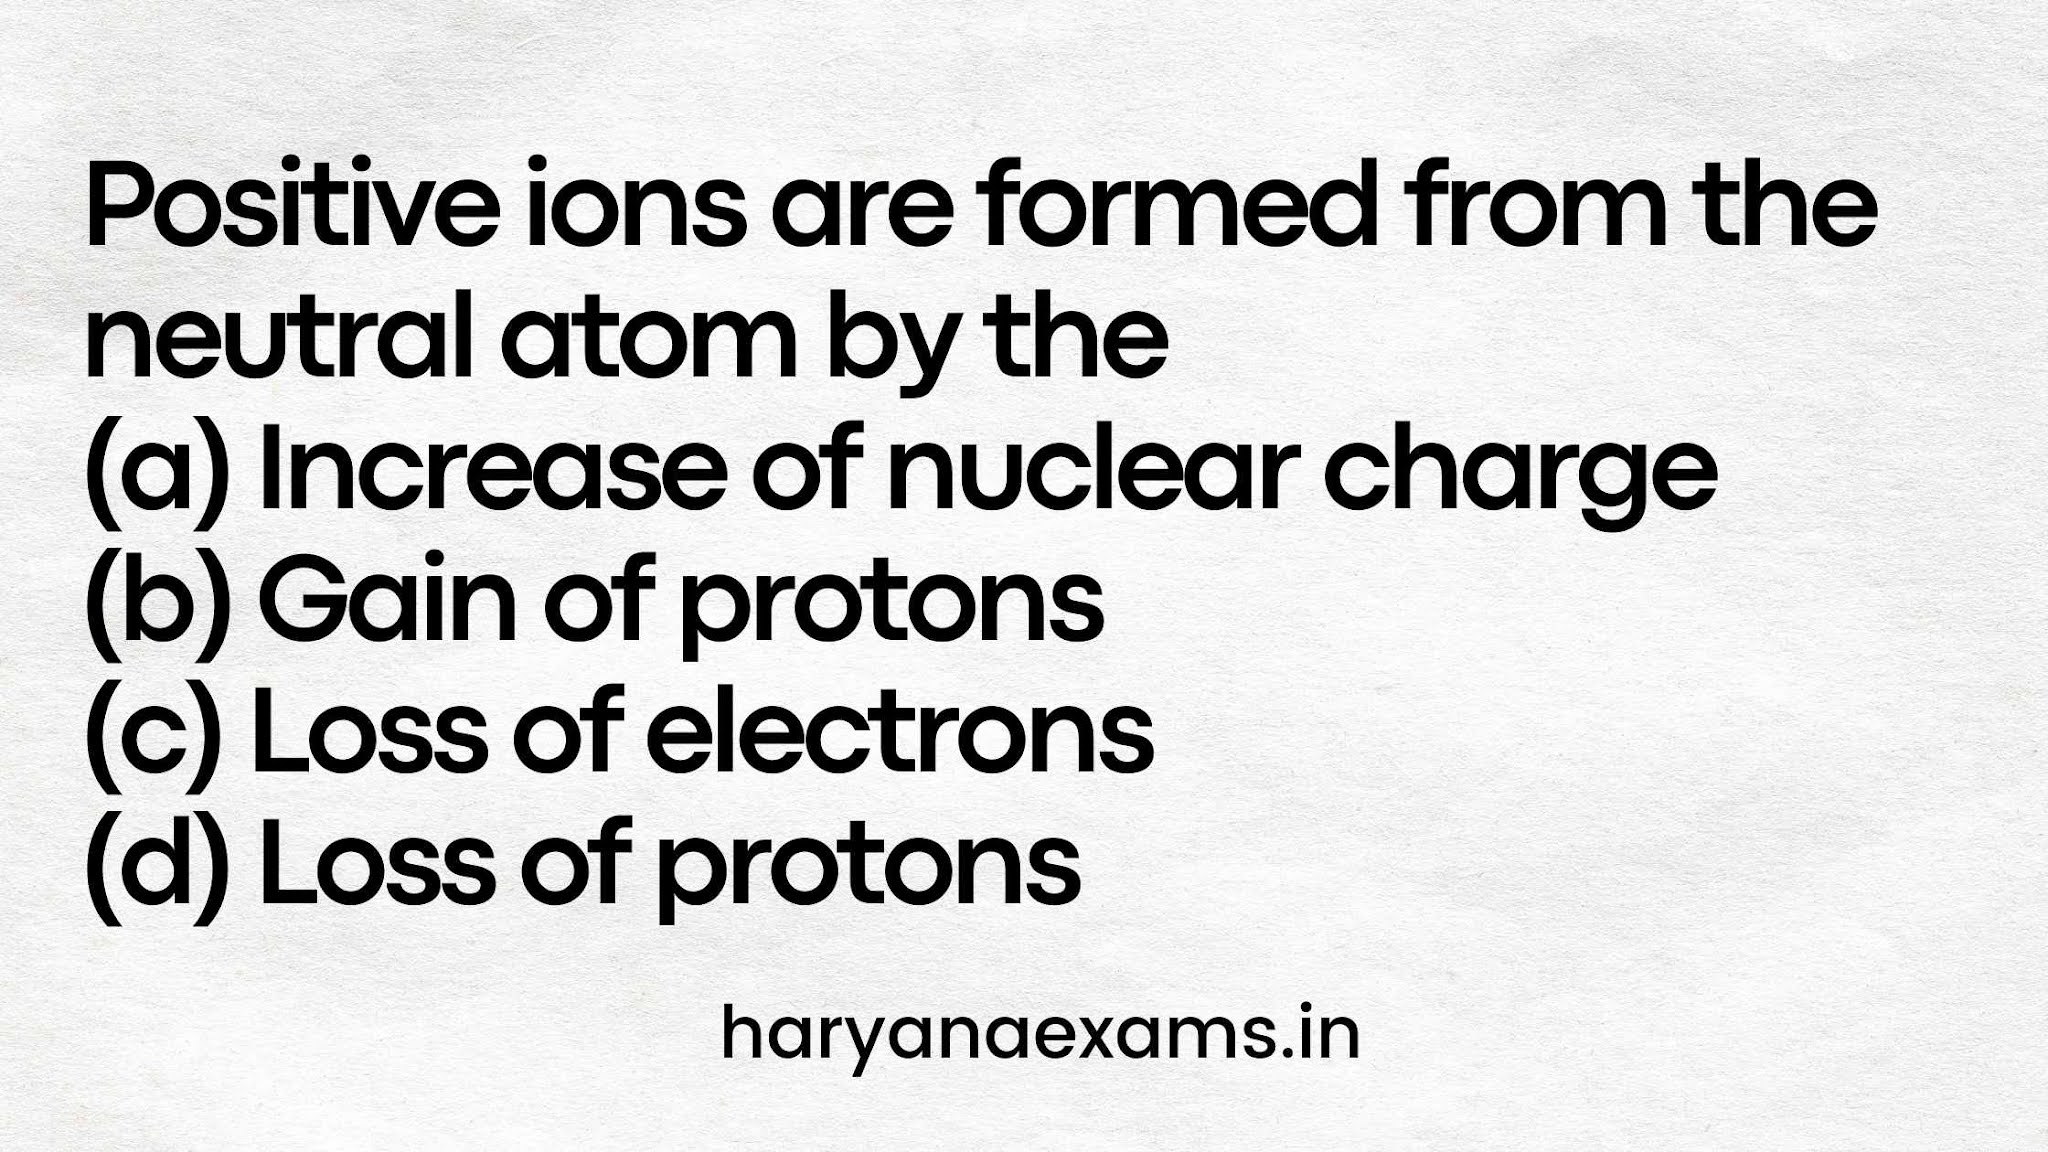 Positive ions are formed from the neutral atom by the  (a) Increase of nuclear charge  (b) Gain of protons  (c) Loss of electrons  (d) Loss of protons